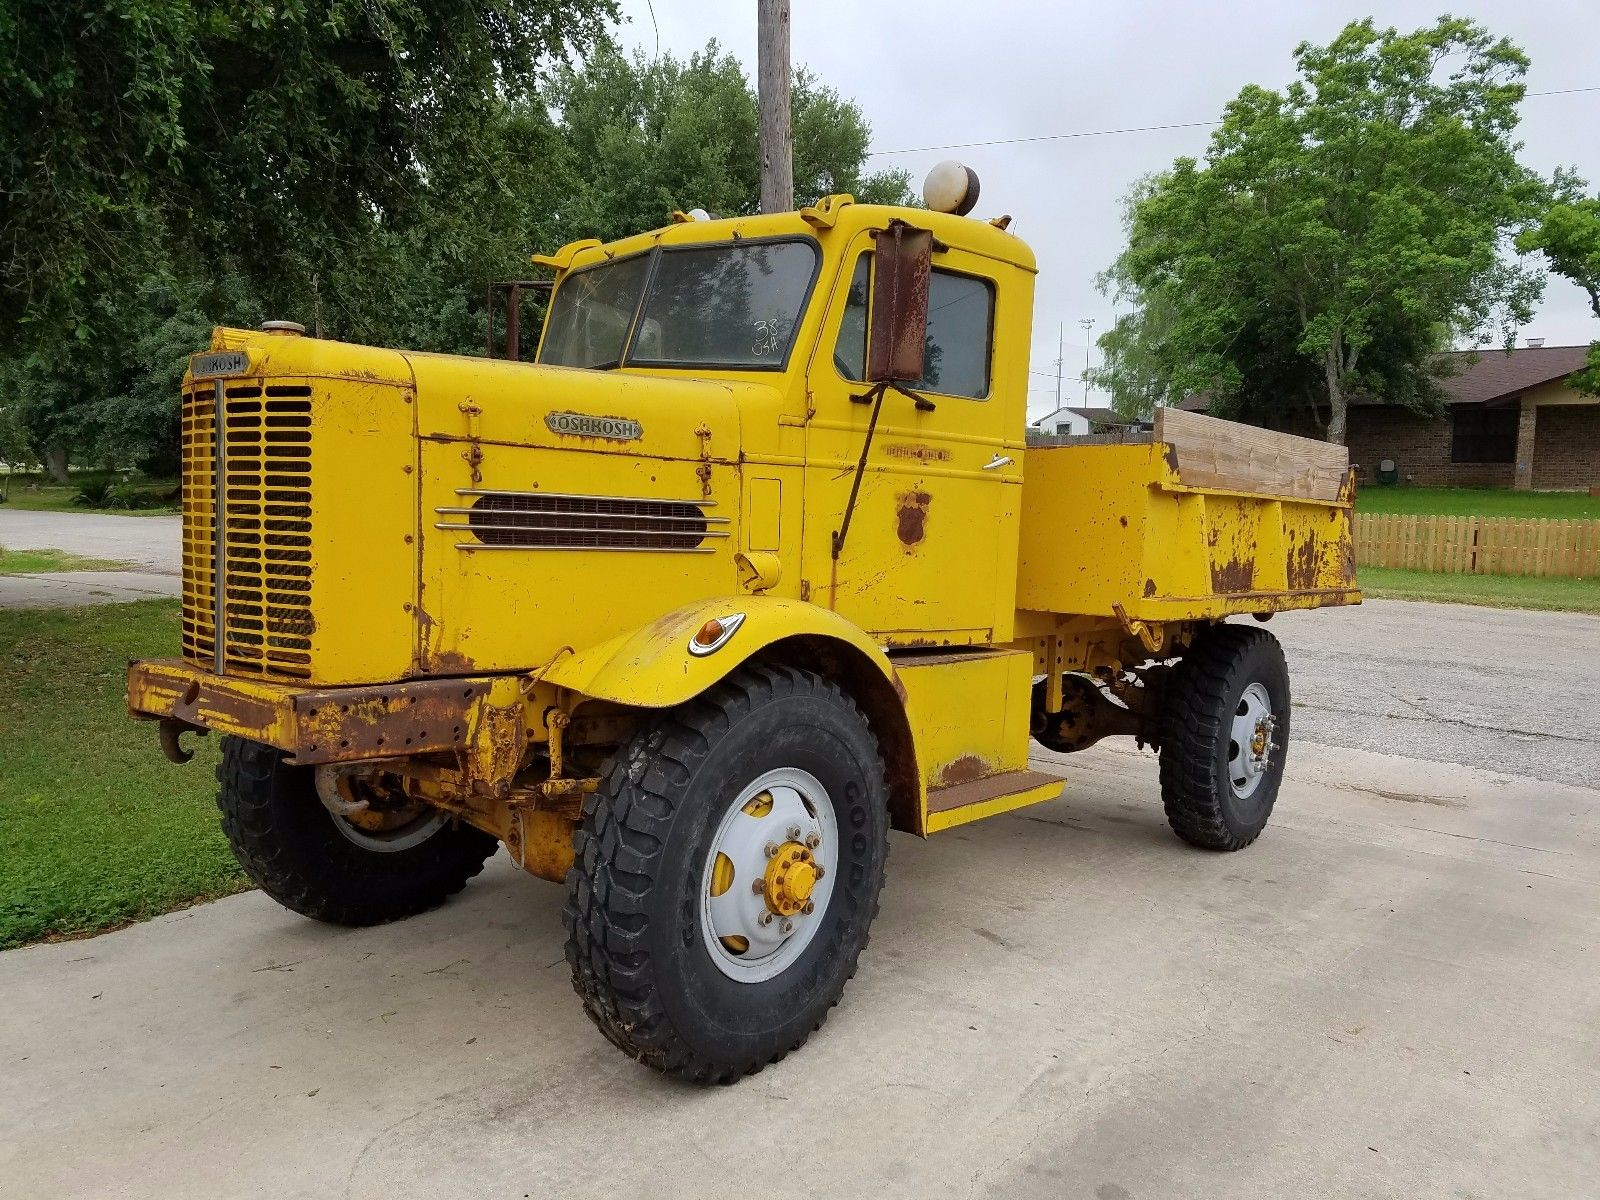 It's Big, It's Ugly, and We Want It! This 1950 Oshkosh W-212 Dump Truck Is A Seldom Seen Beast